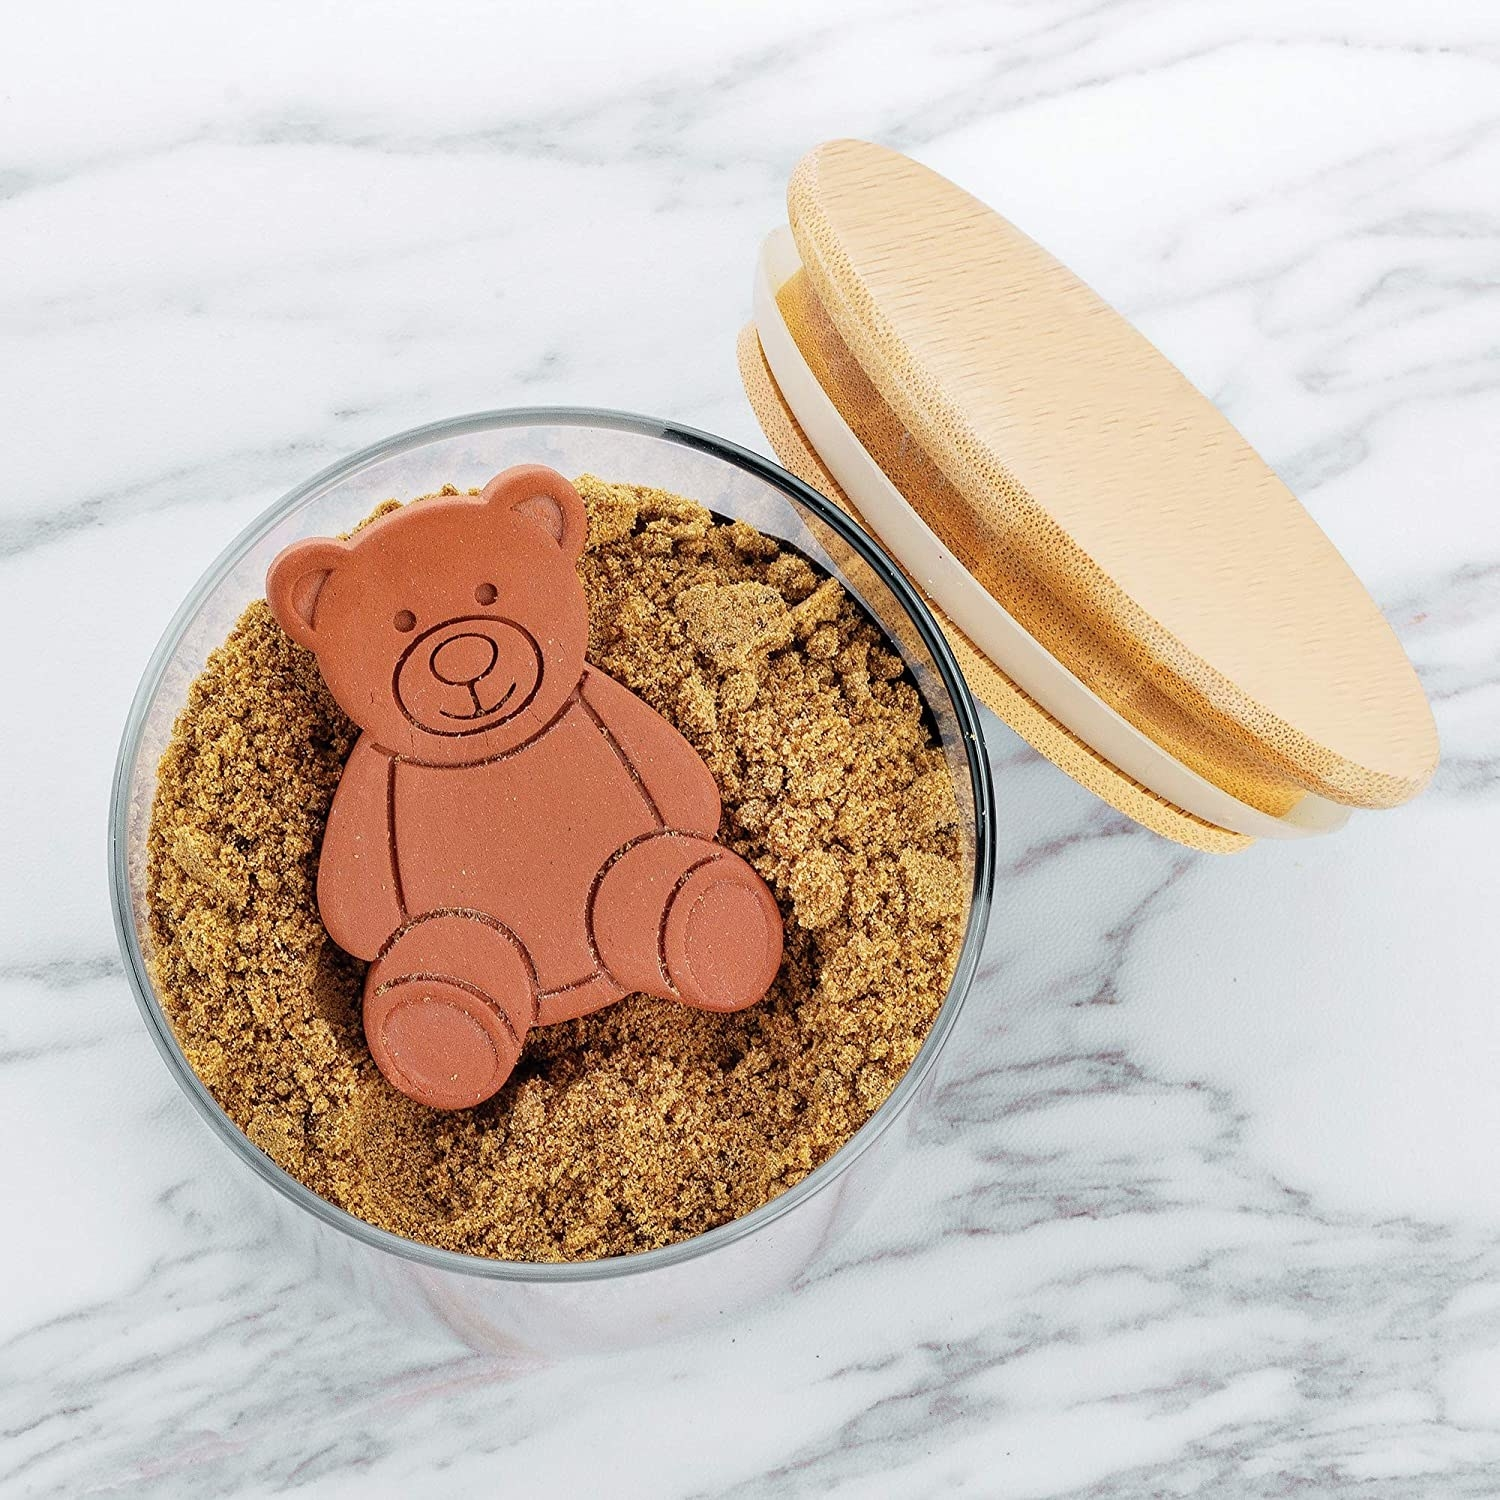 A flatlay of the teddy bear shaped saver inside a jar of brown sugar